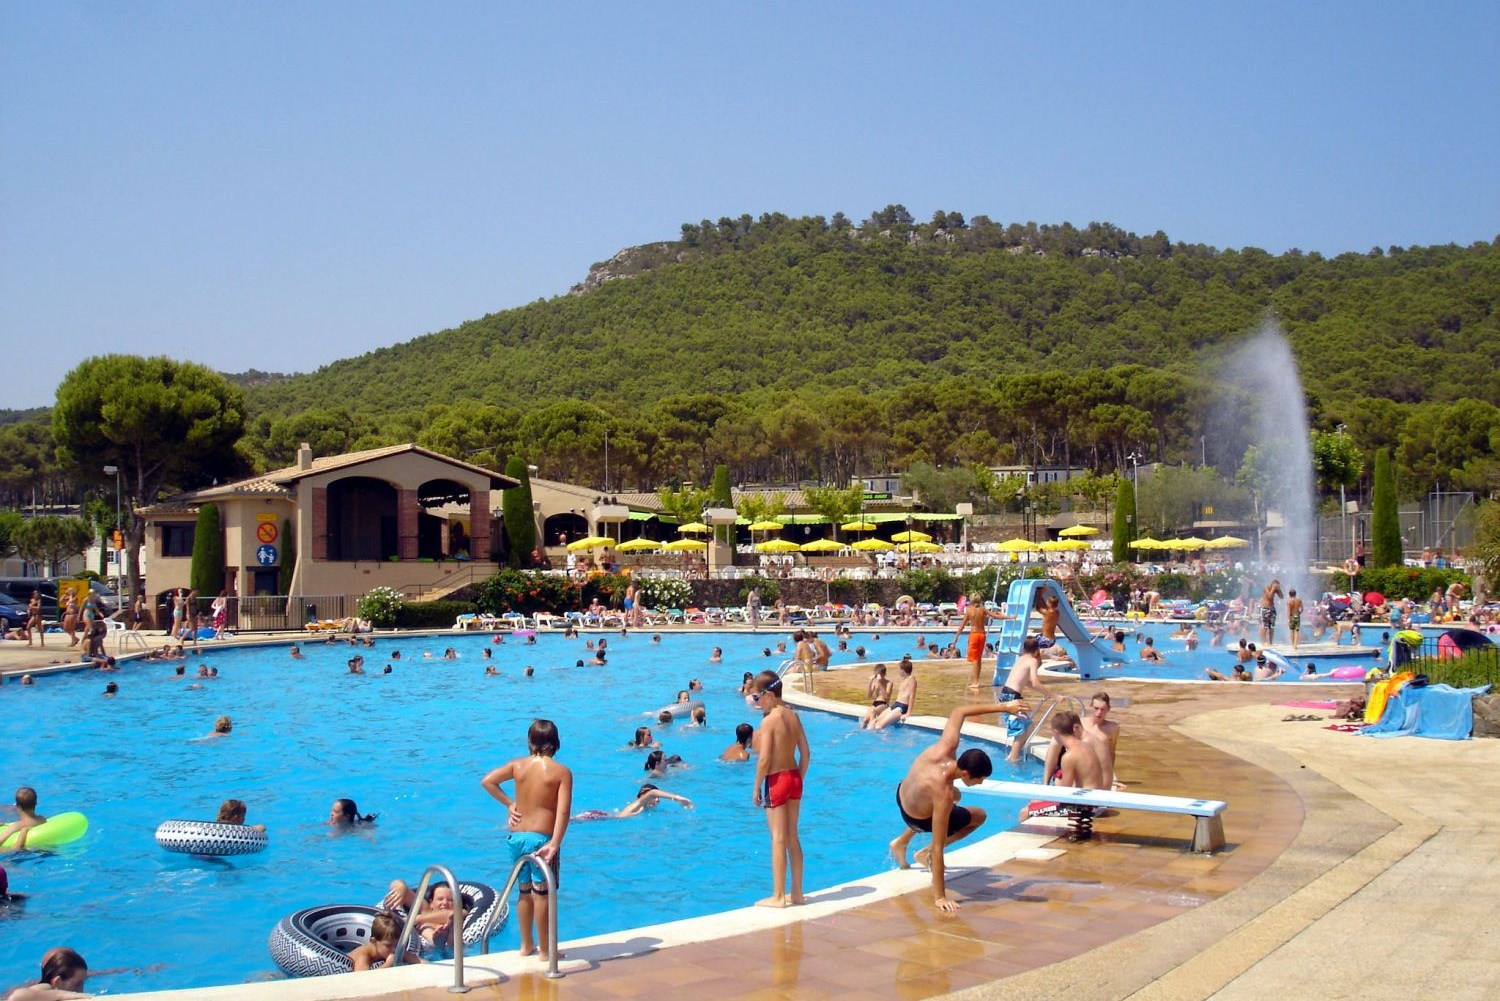 Camping espagne week end camping espagne vacances